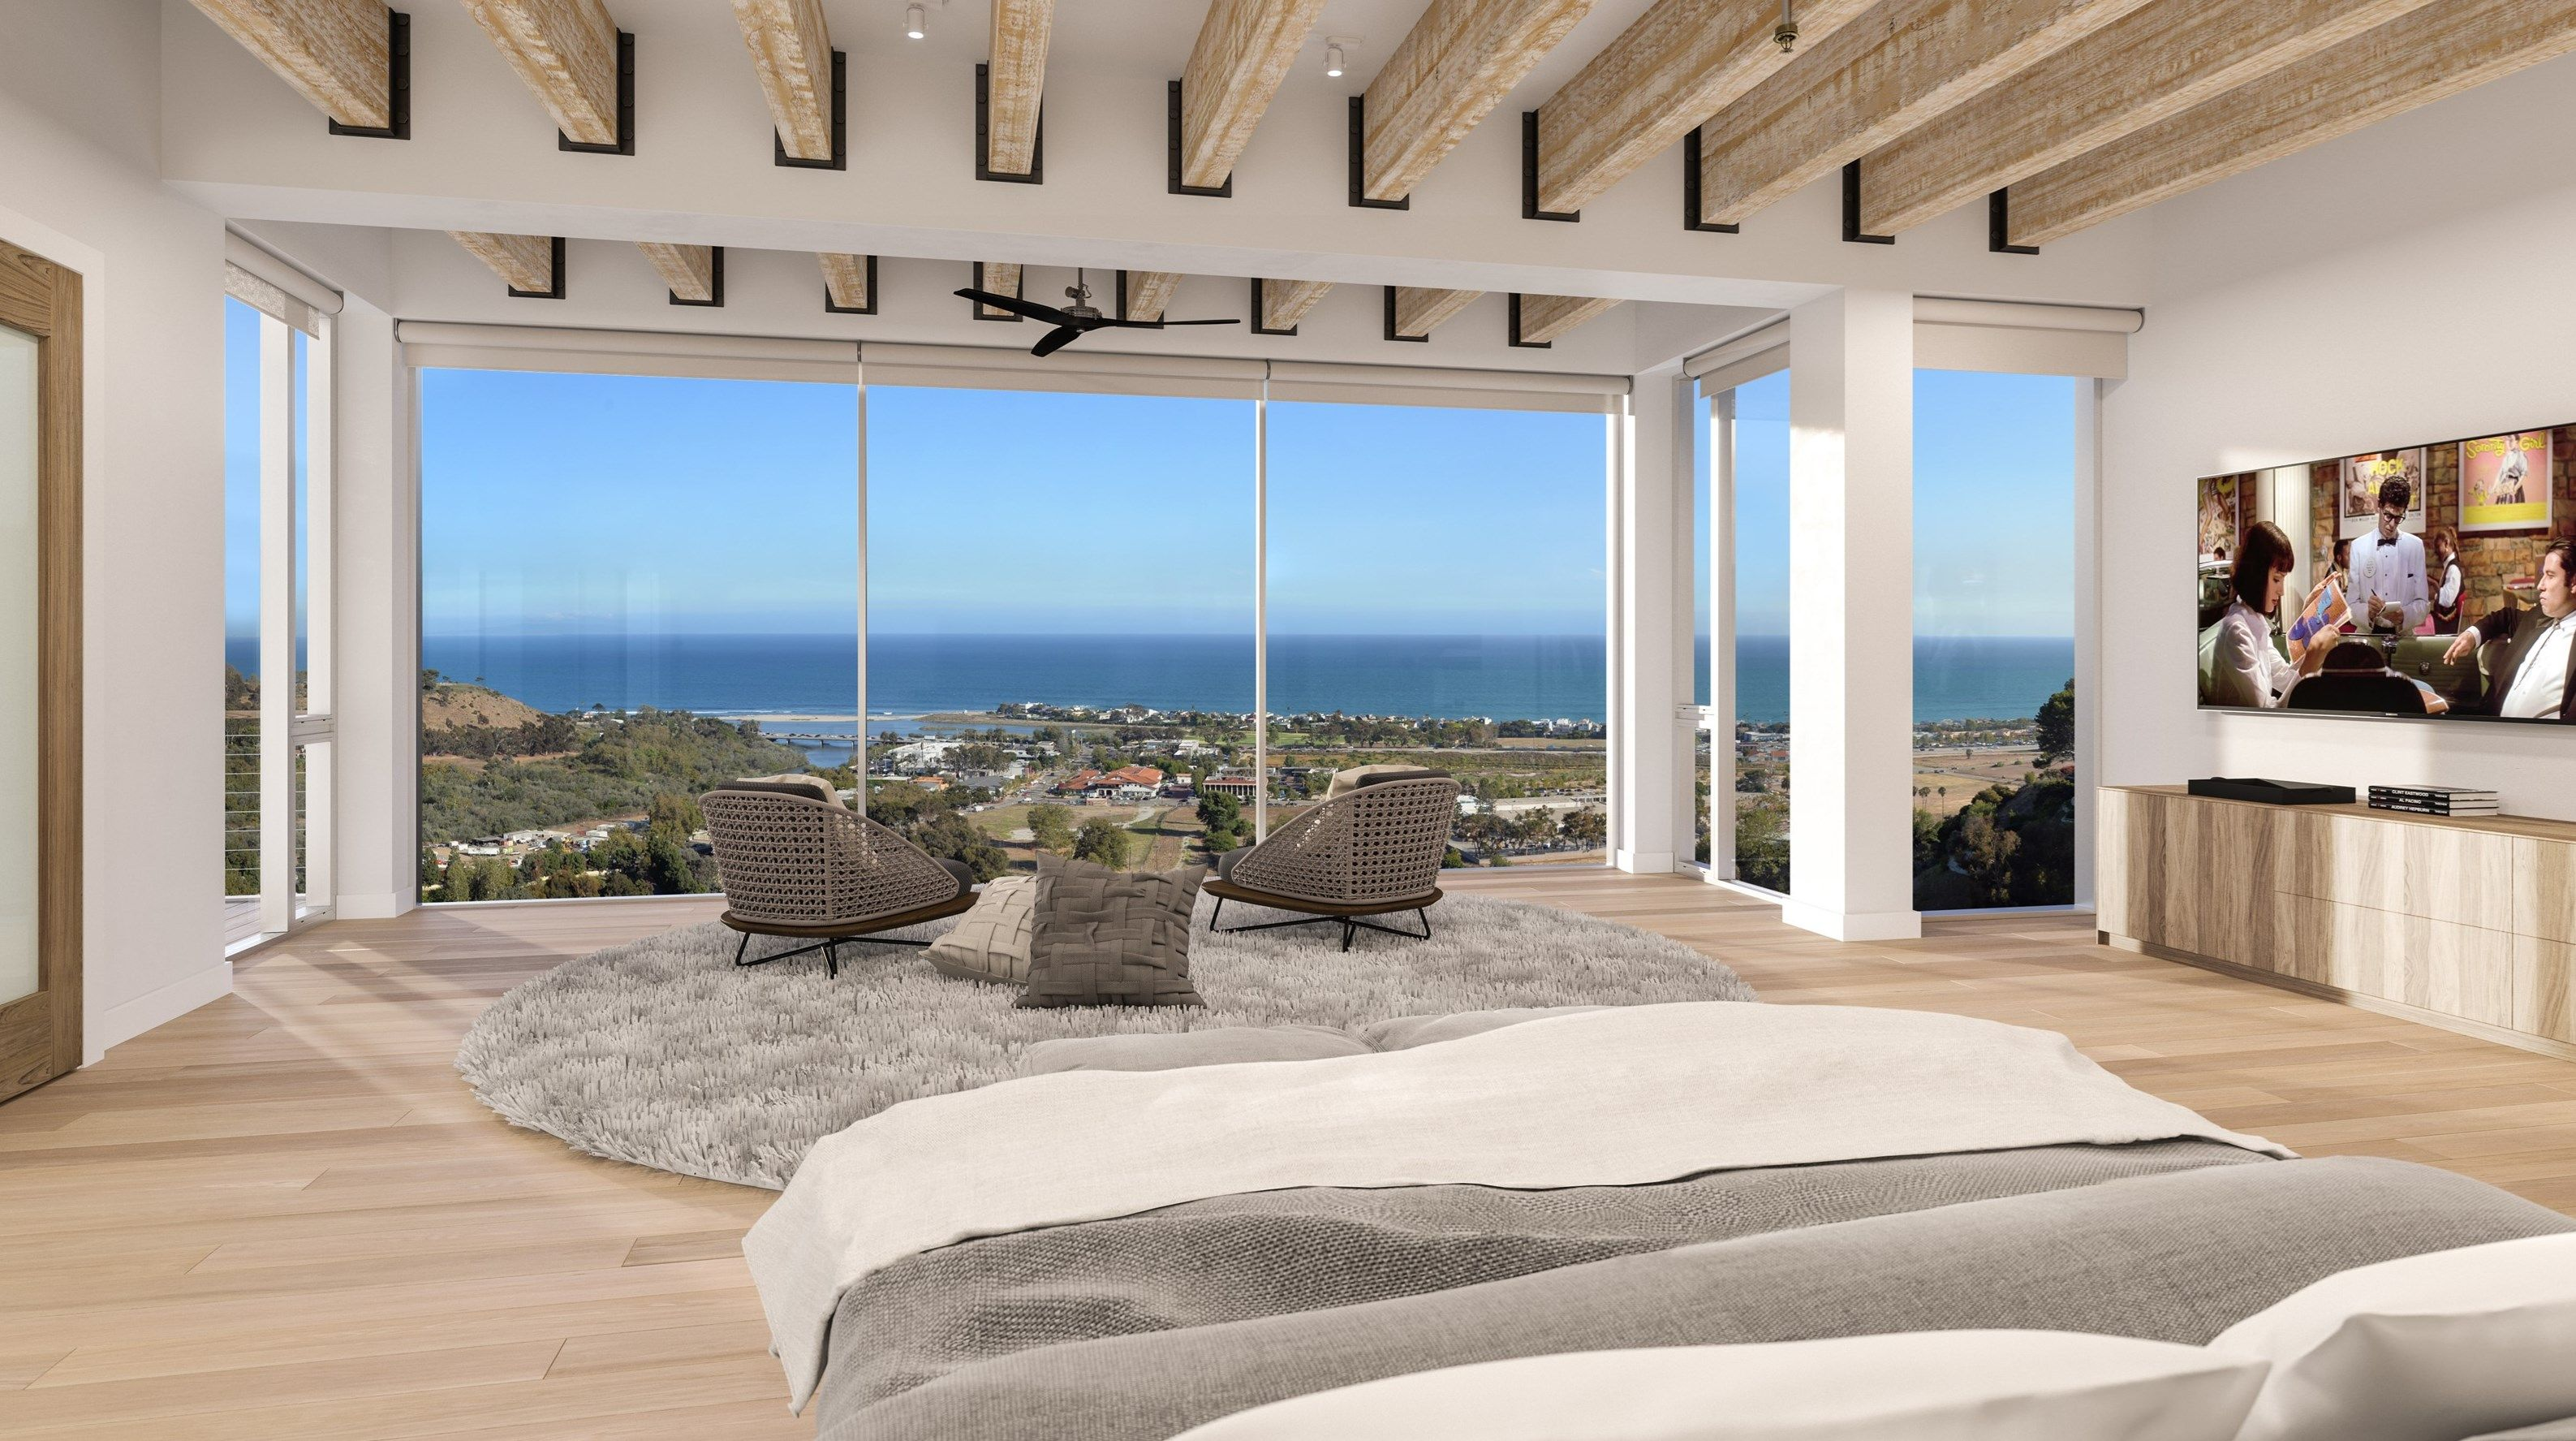 curbed expensive master bedroom bedrooms of homes suites most hamptons the